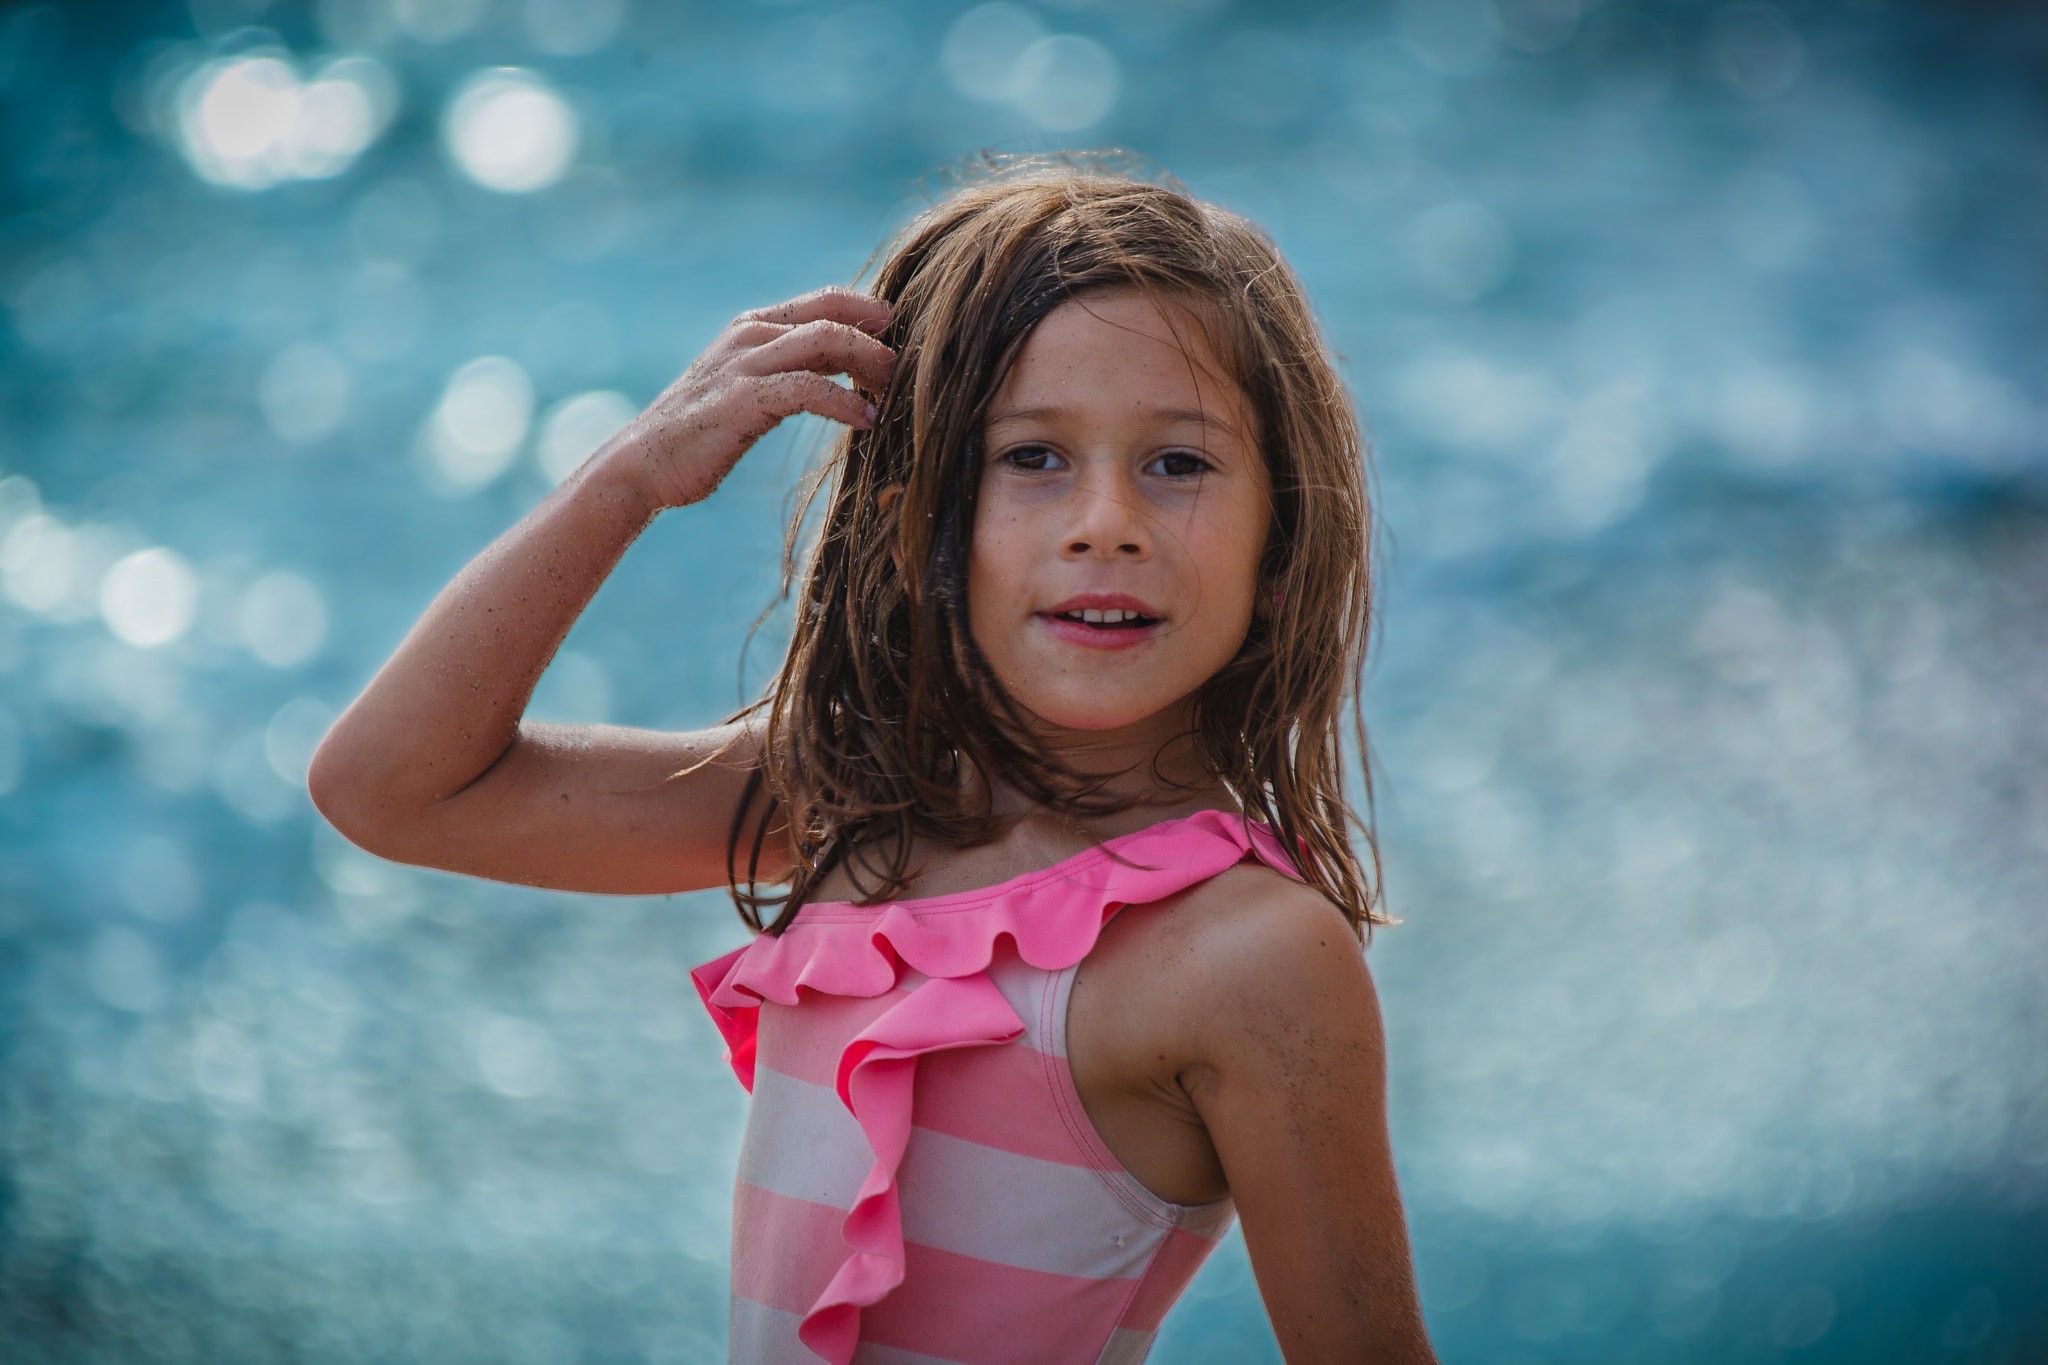 Photograph Emma at the beach by RobertLBrett on 500px